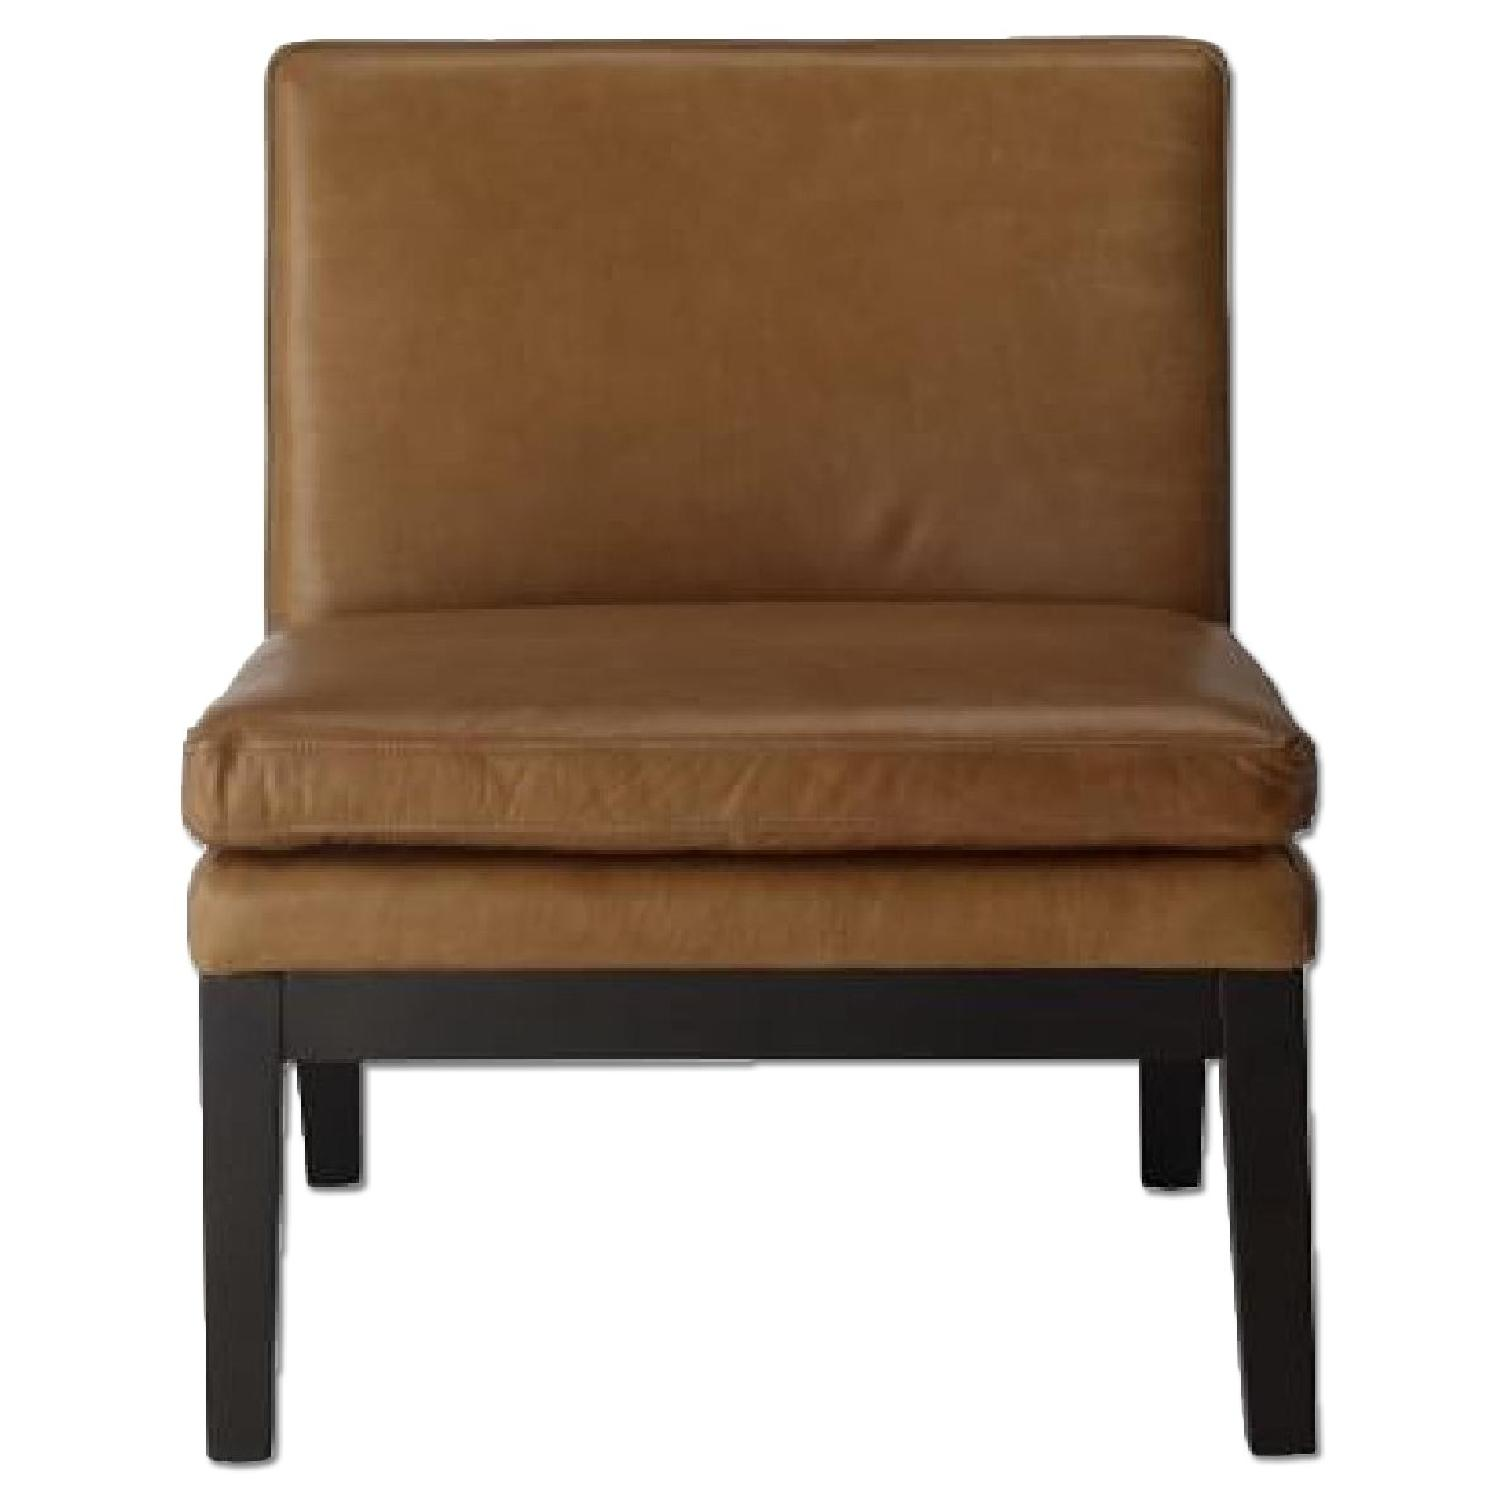 elm o west chair slipper brooks products